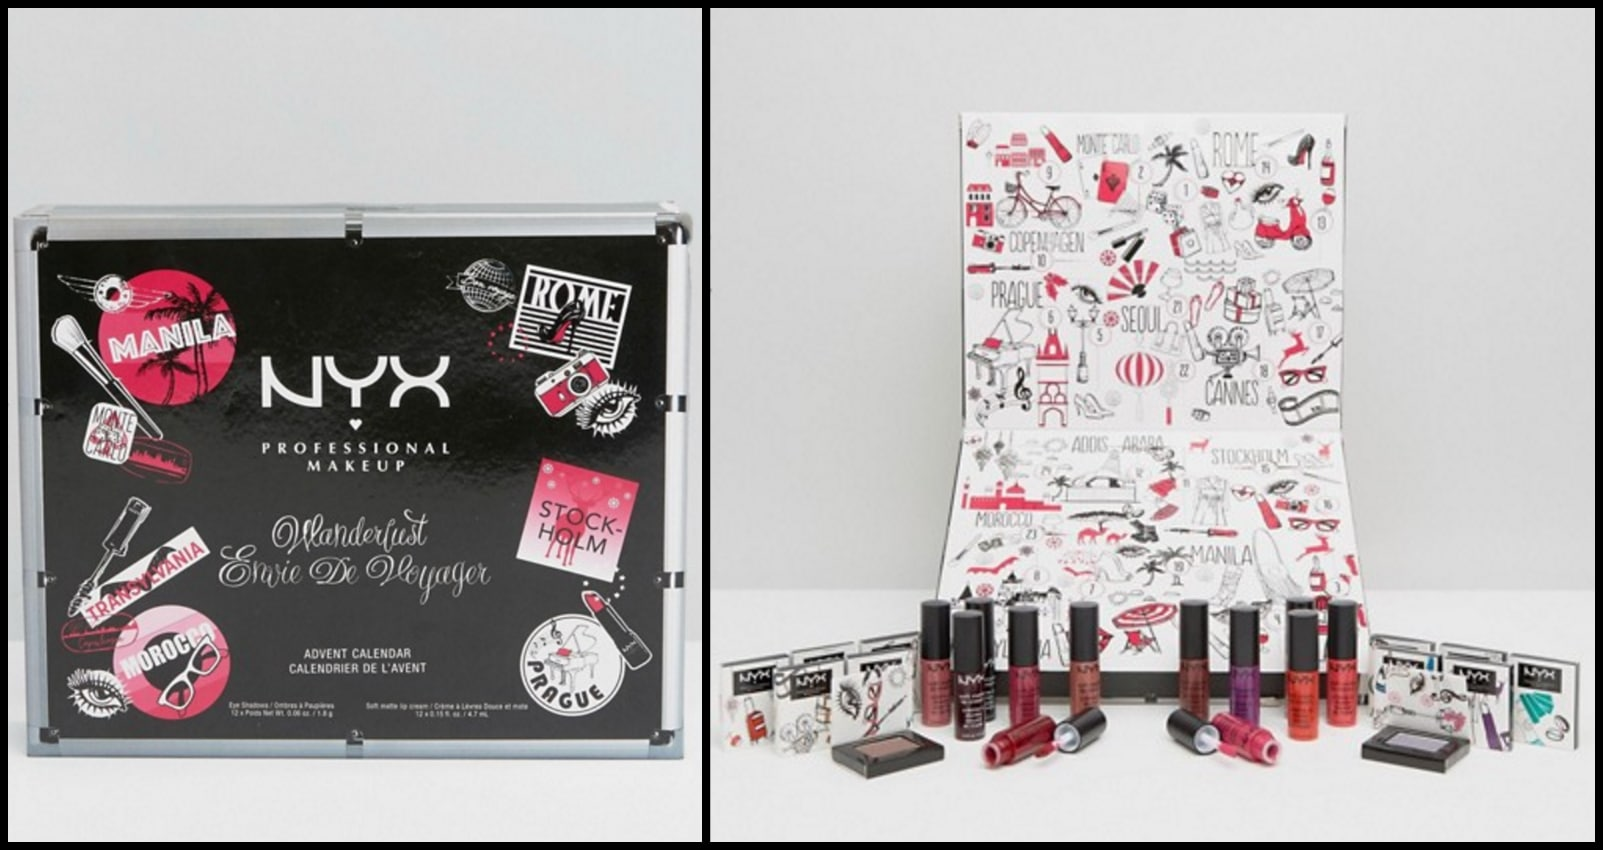 Calendario Avvento Makeup.Nyx Professional Make Up Calendario Avvento About Beauty